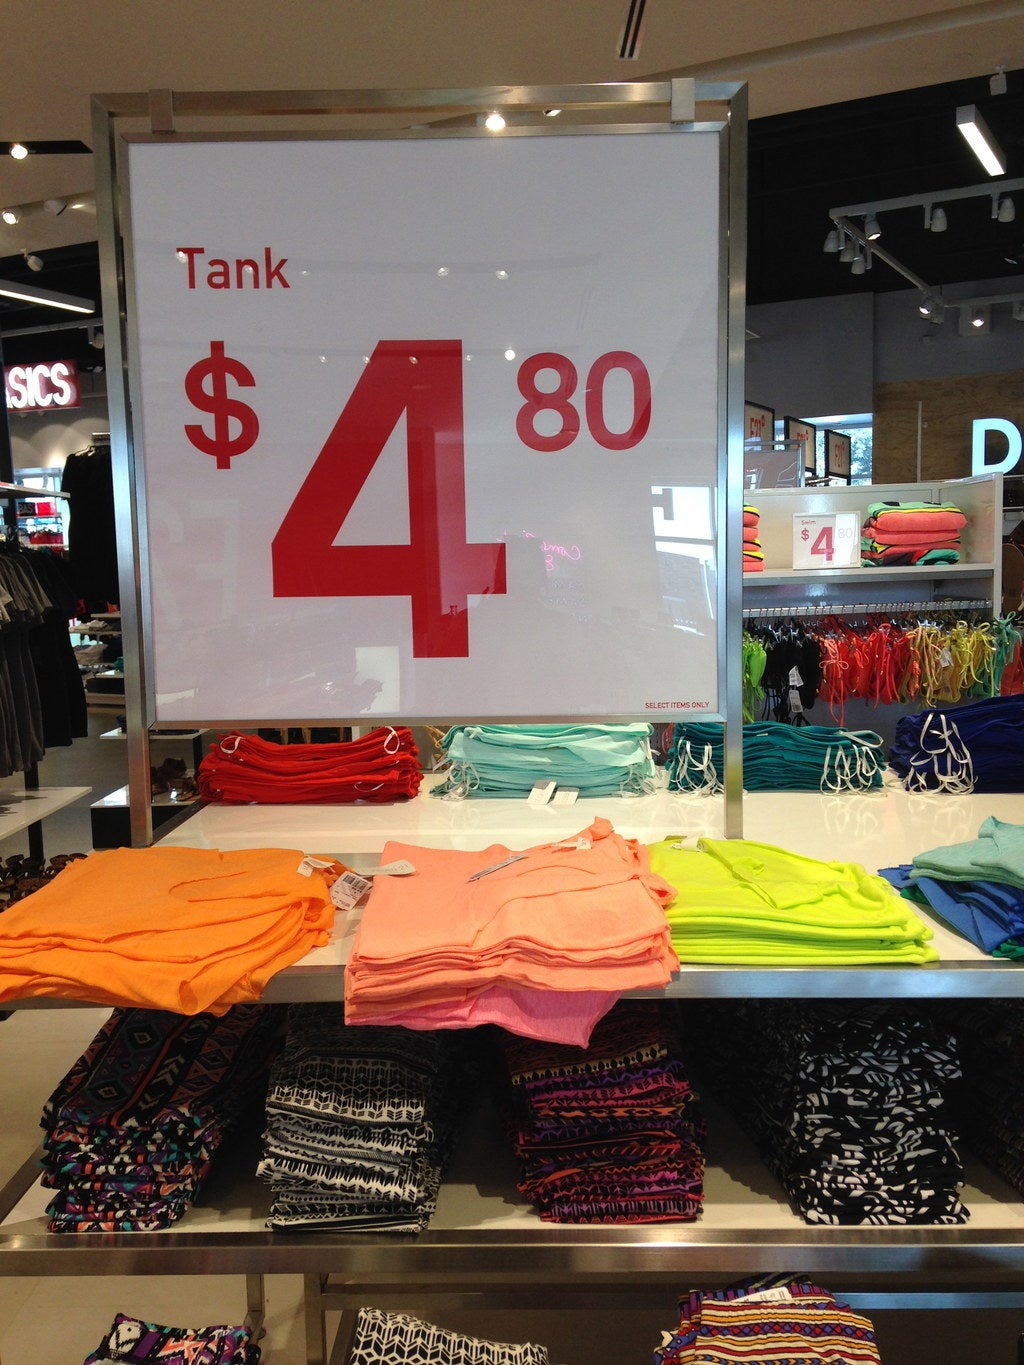 An Even Cheaper Forever 21 Highlights Low-Cost Manufacturing